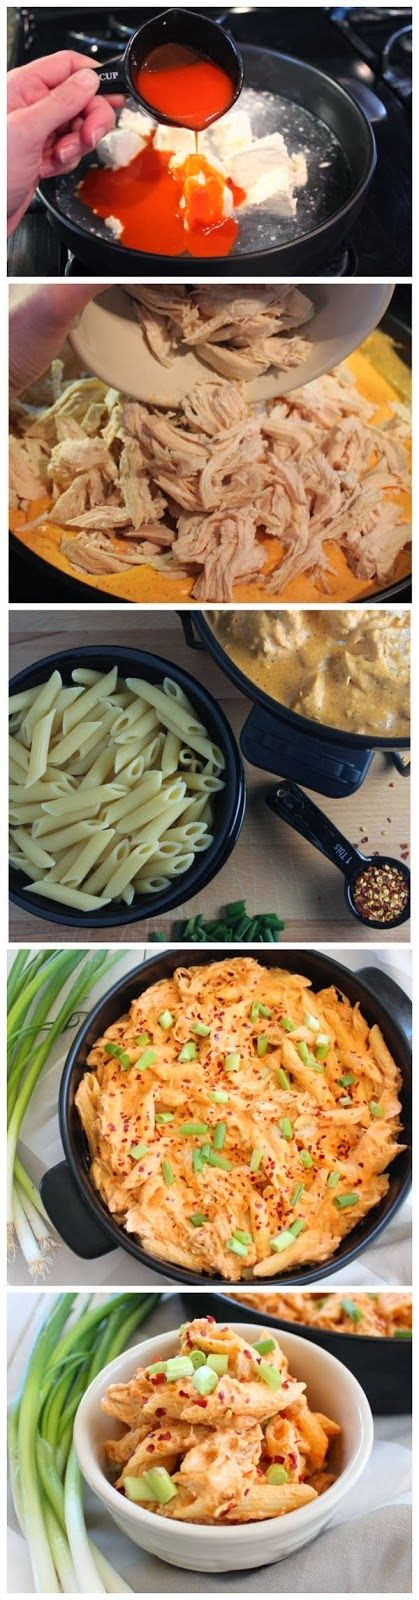 How To Buffalo Chicken Cheesy Penne Too rich for me, but hubby liked it.  The sauce was good as sandwiches on toast.